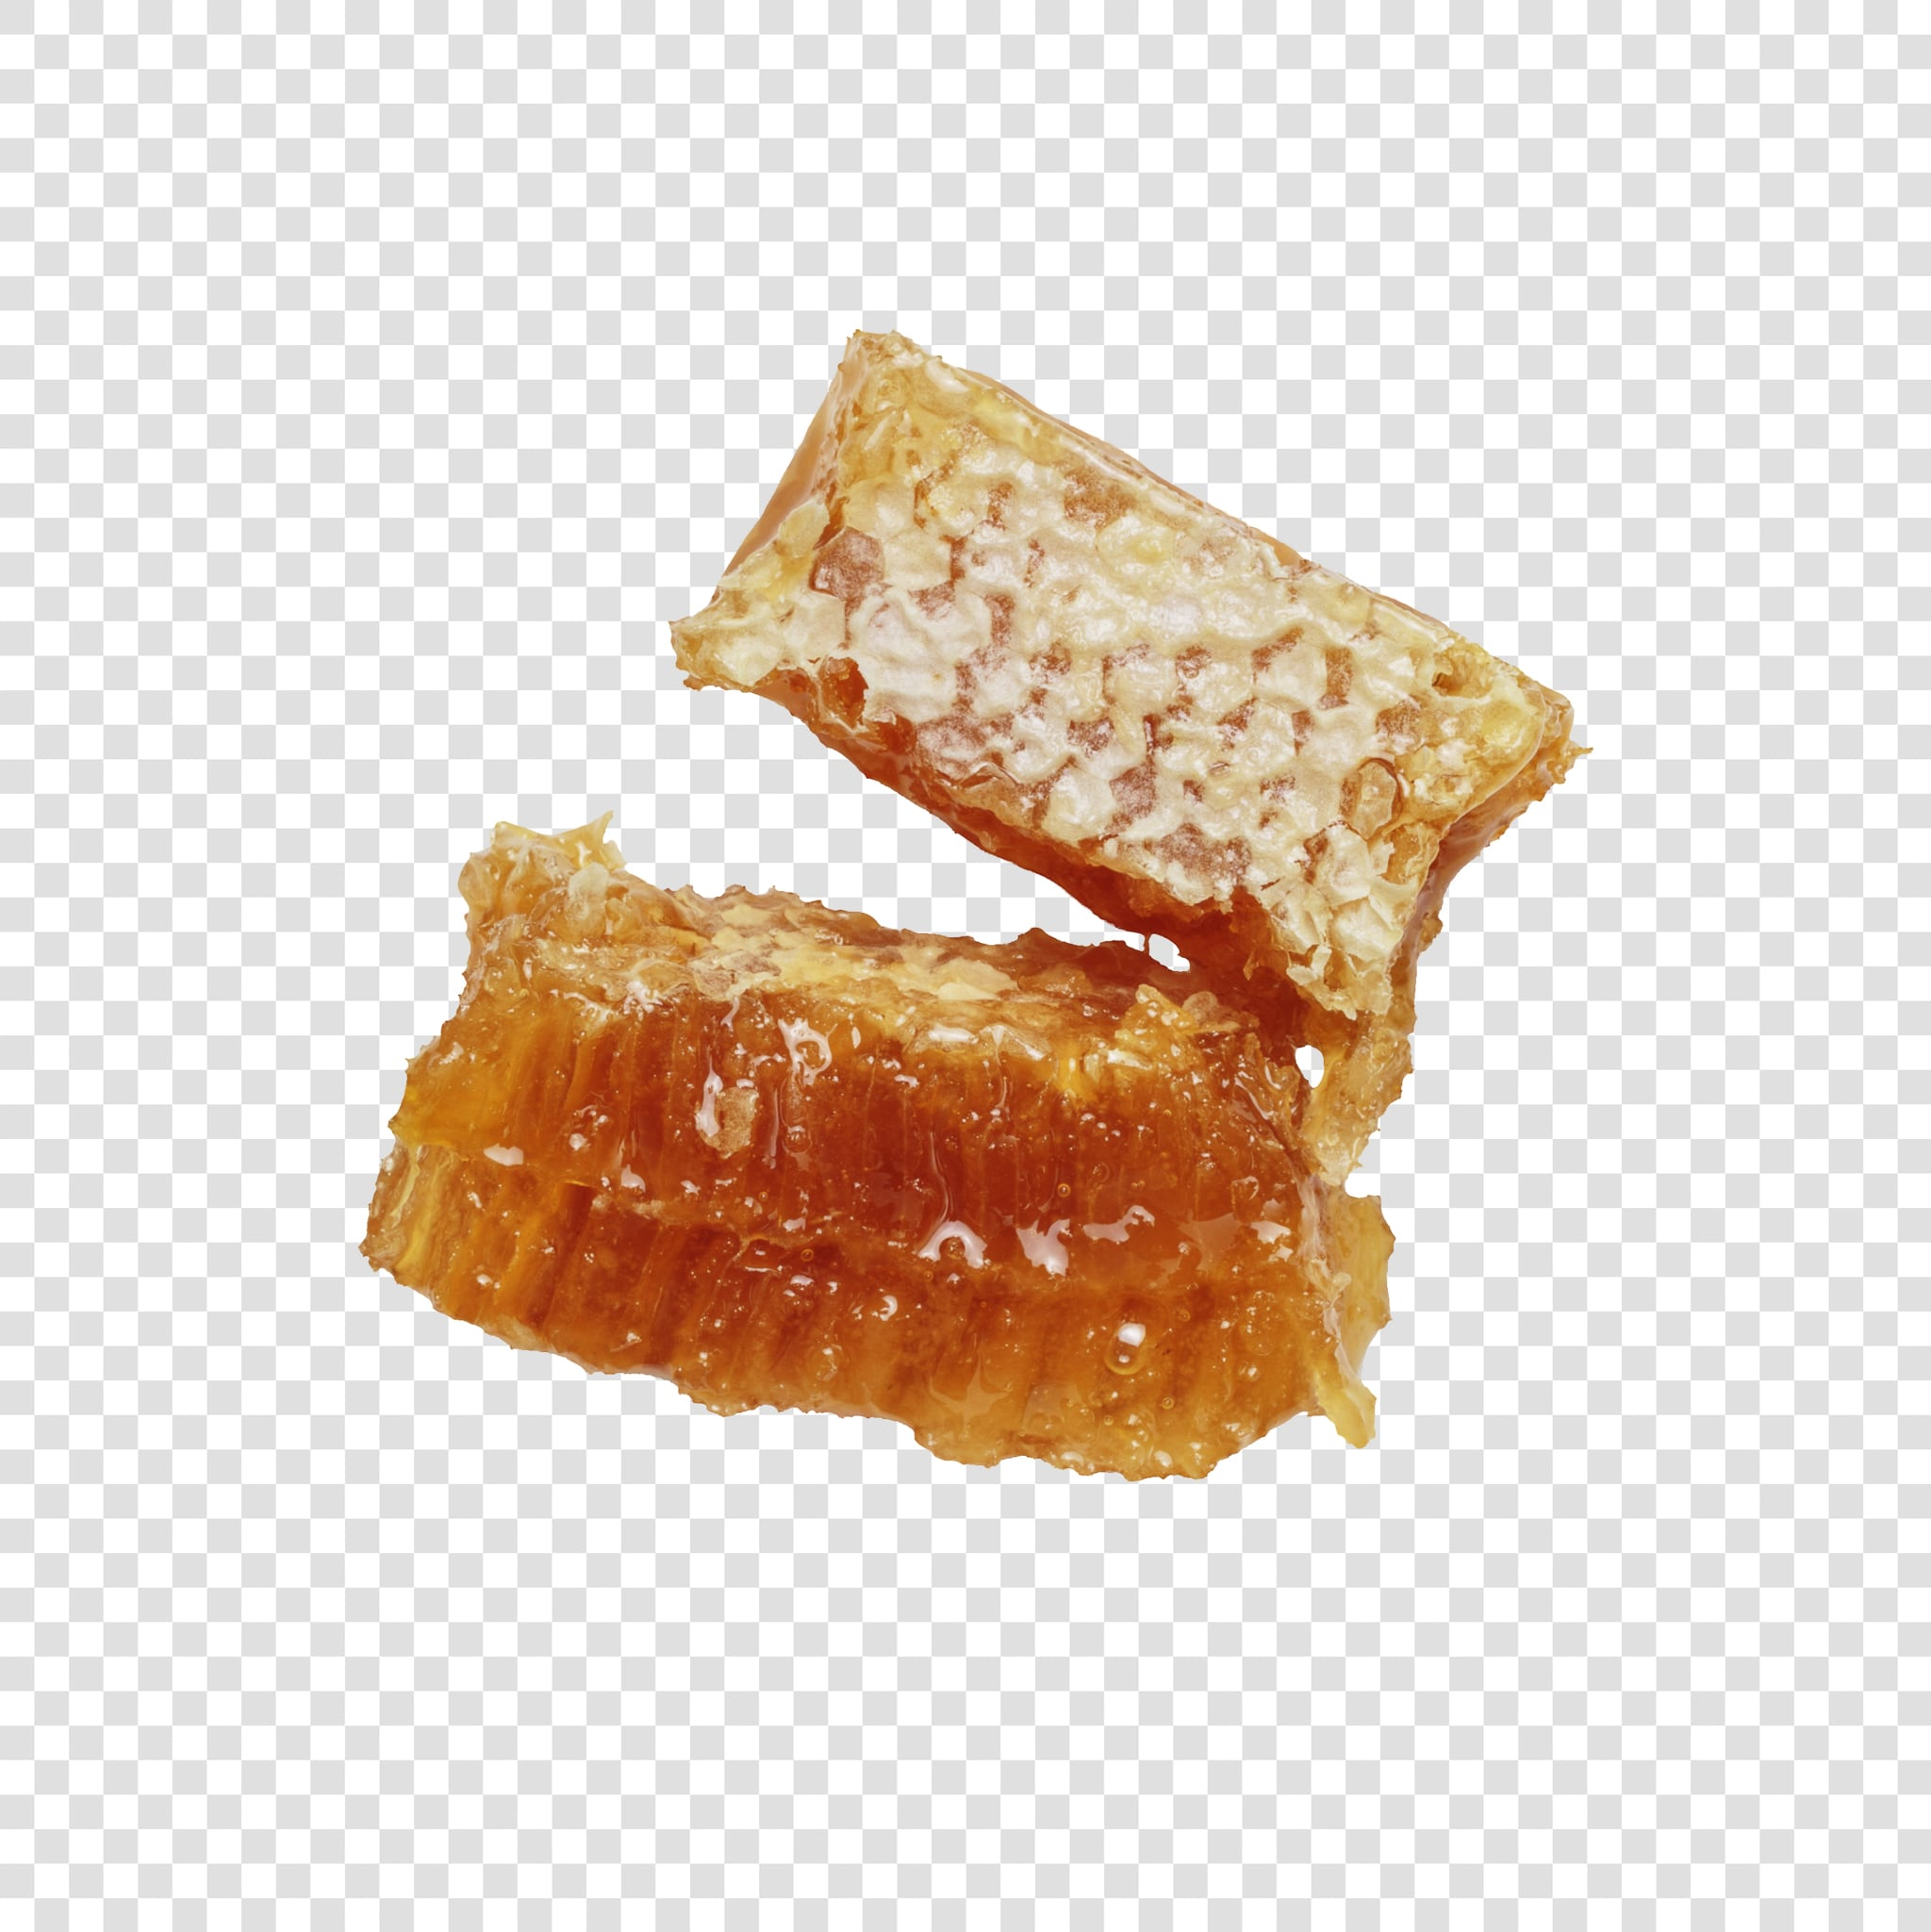 Honey PSD image with transparent background